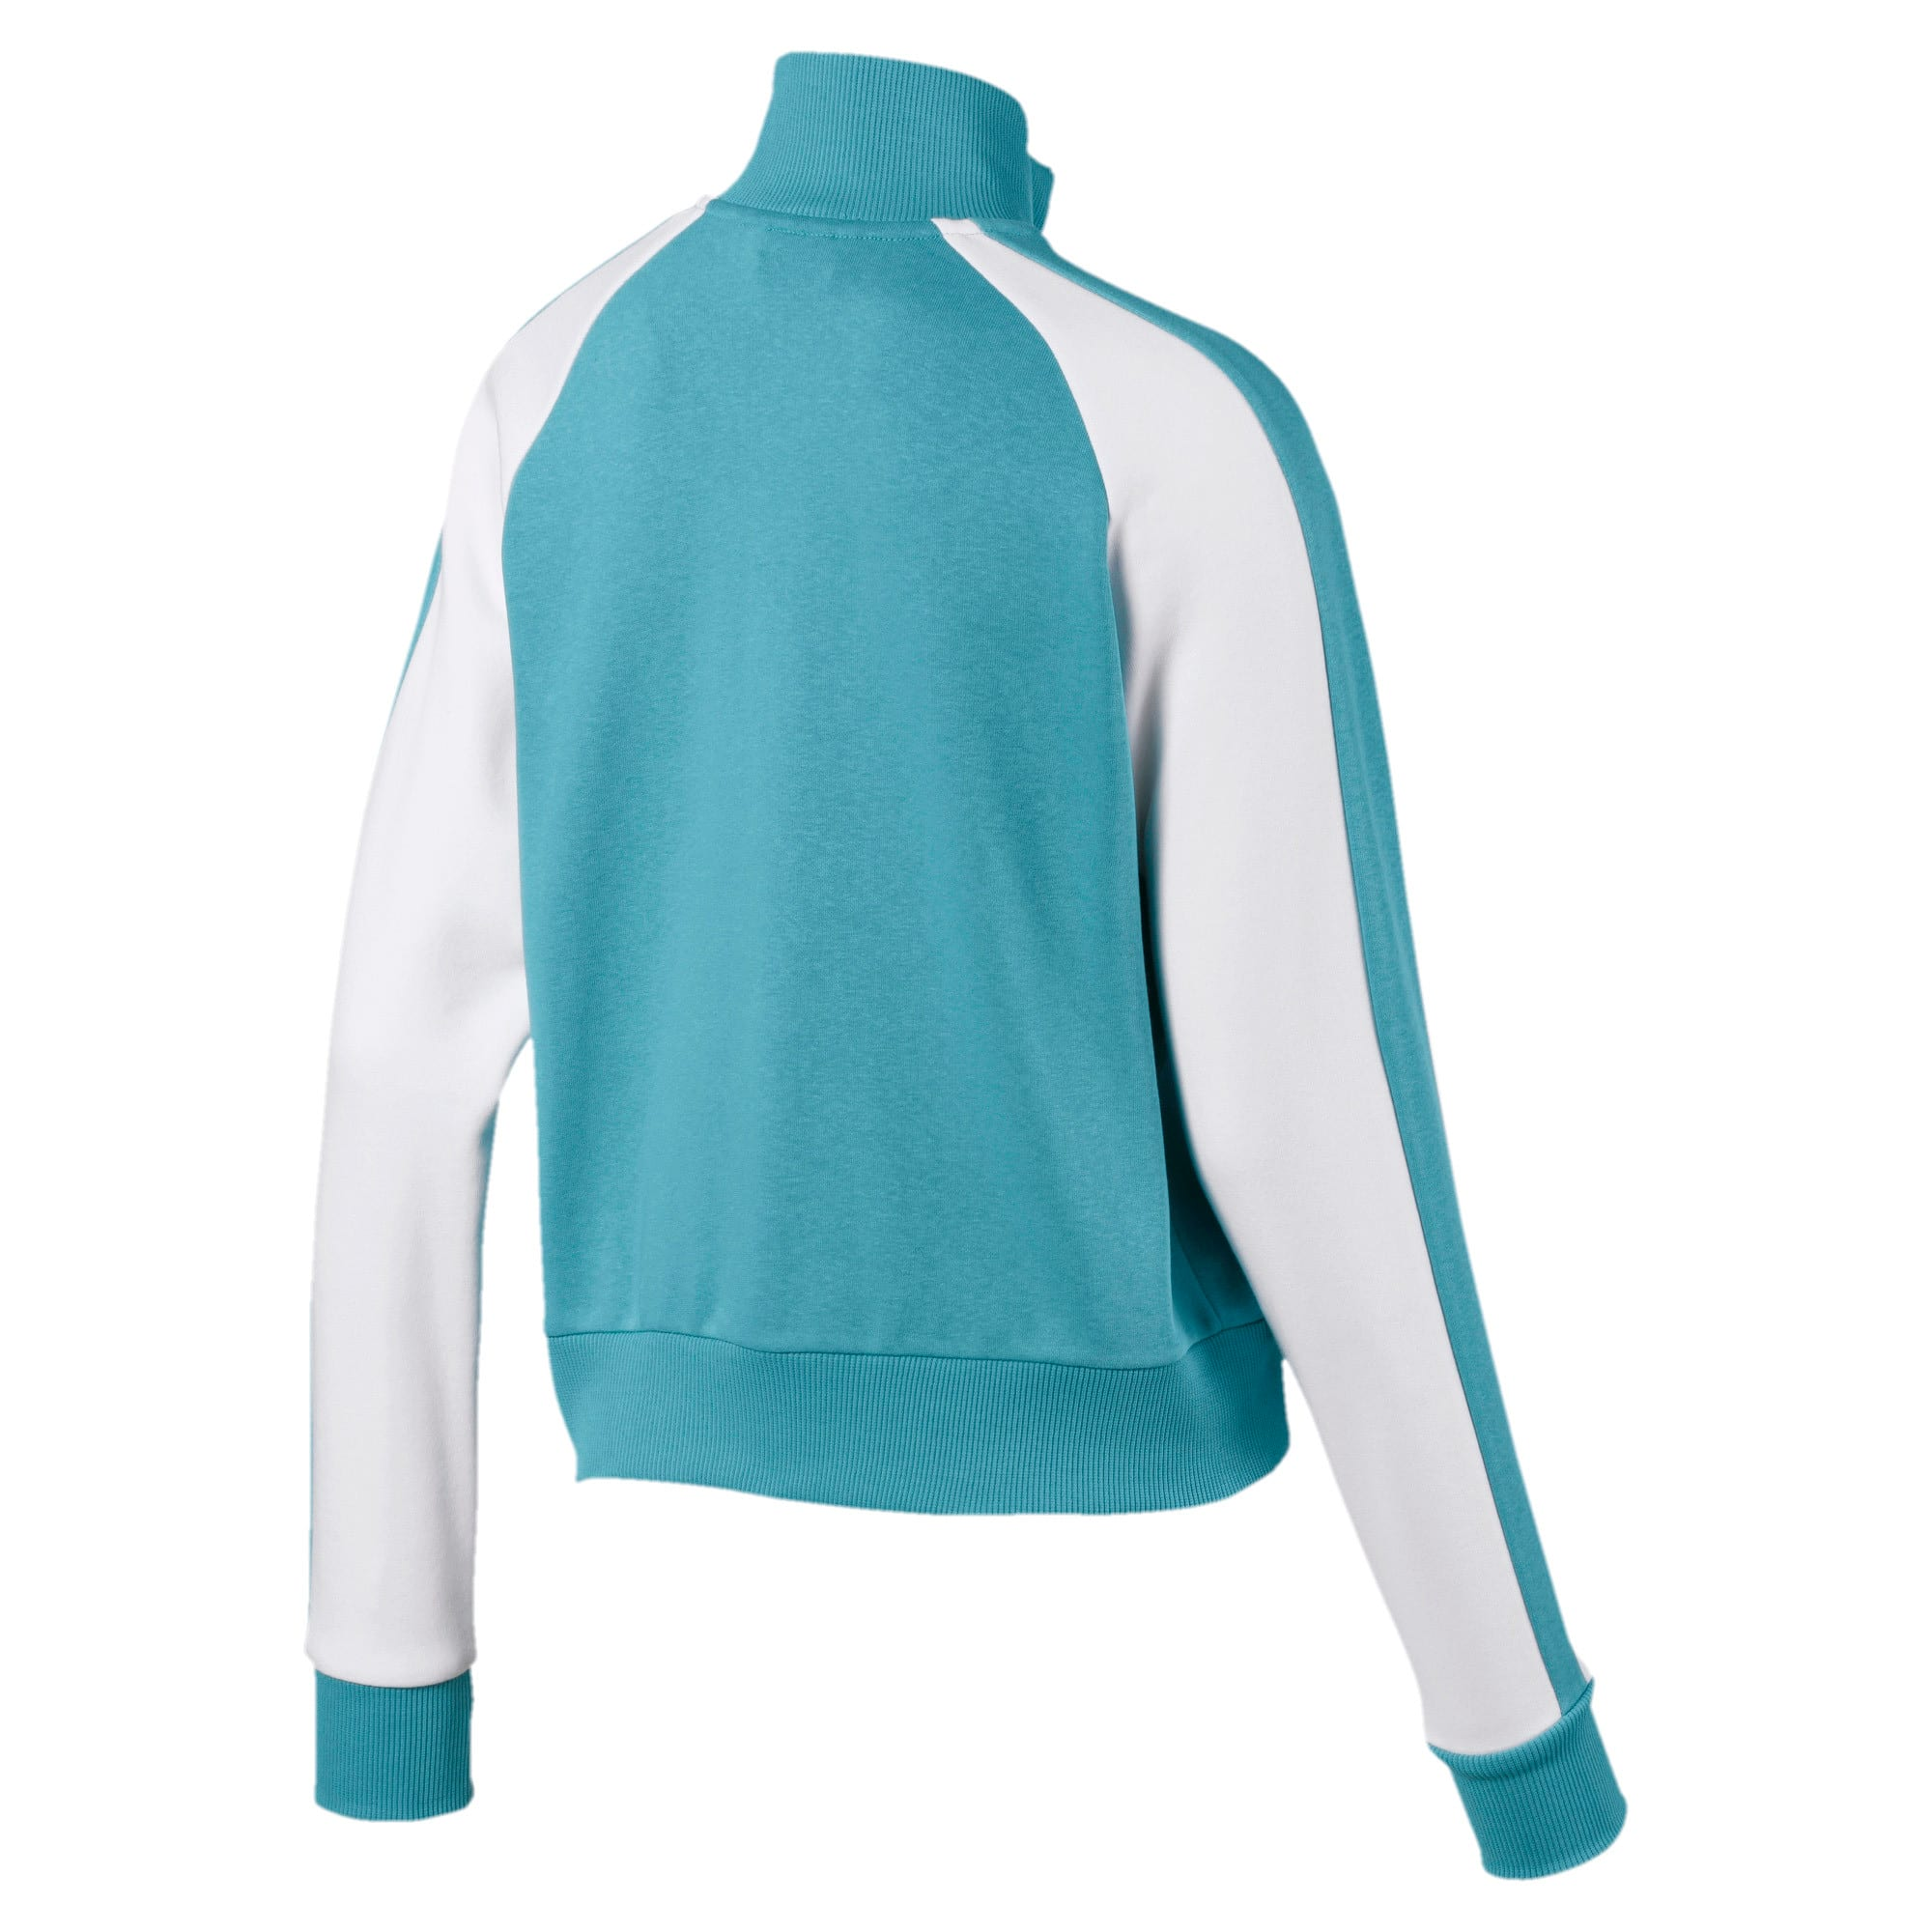 Classics T7 Women's Track Jacket, Milky Blue, large